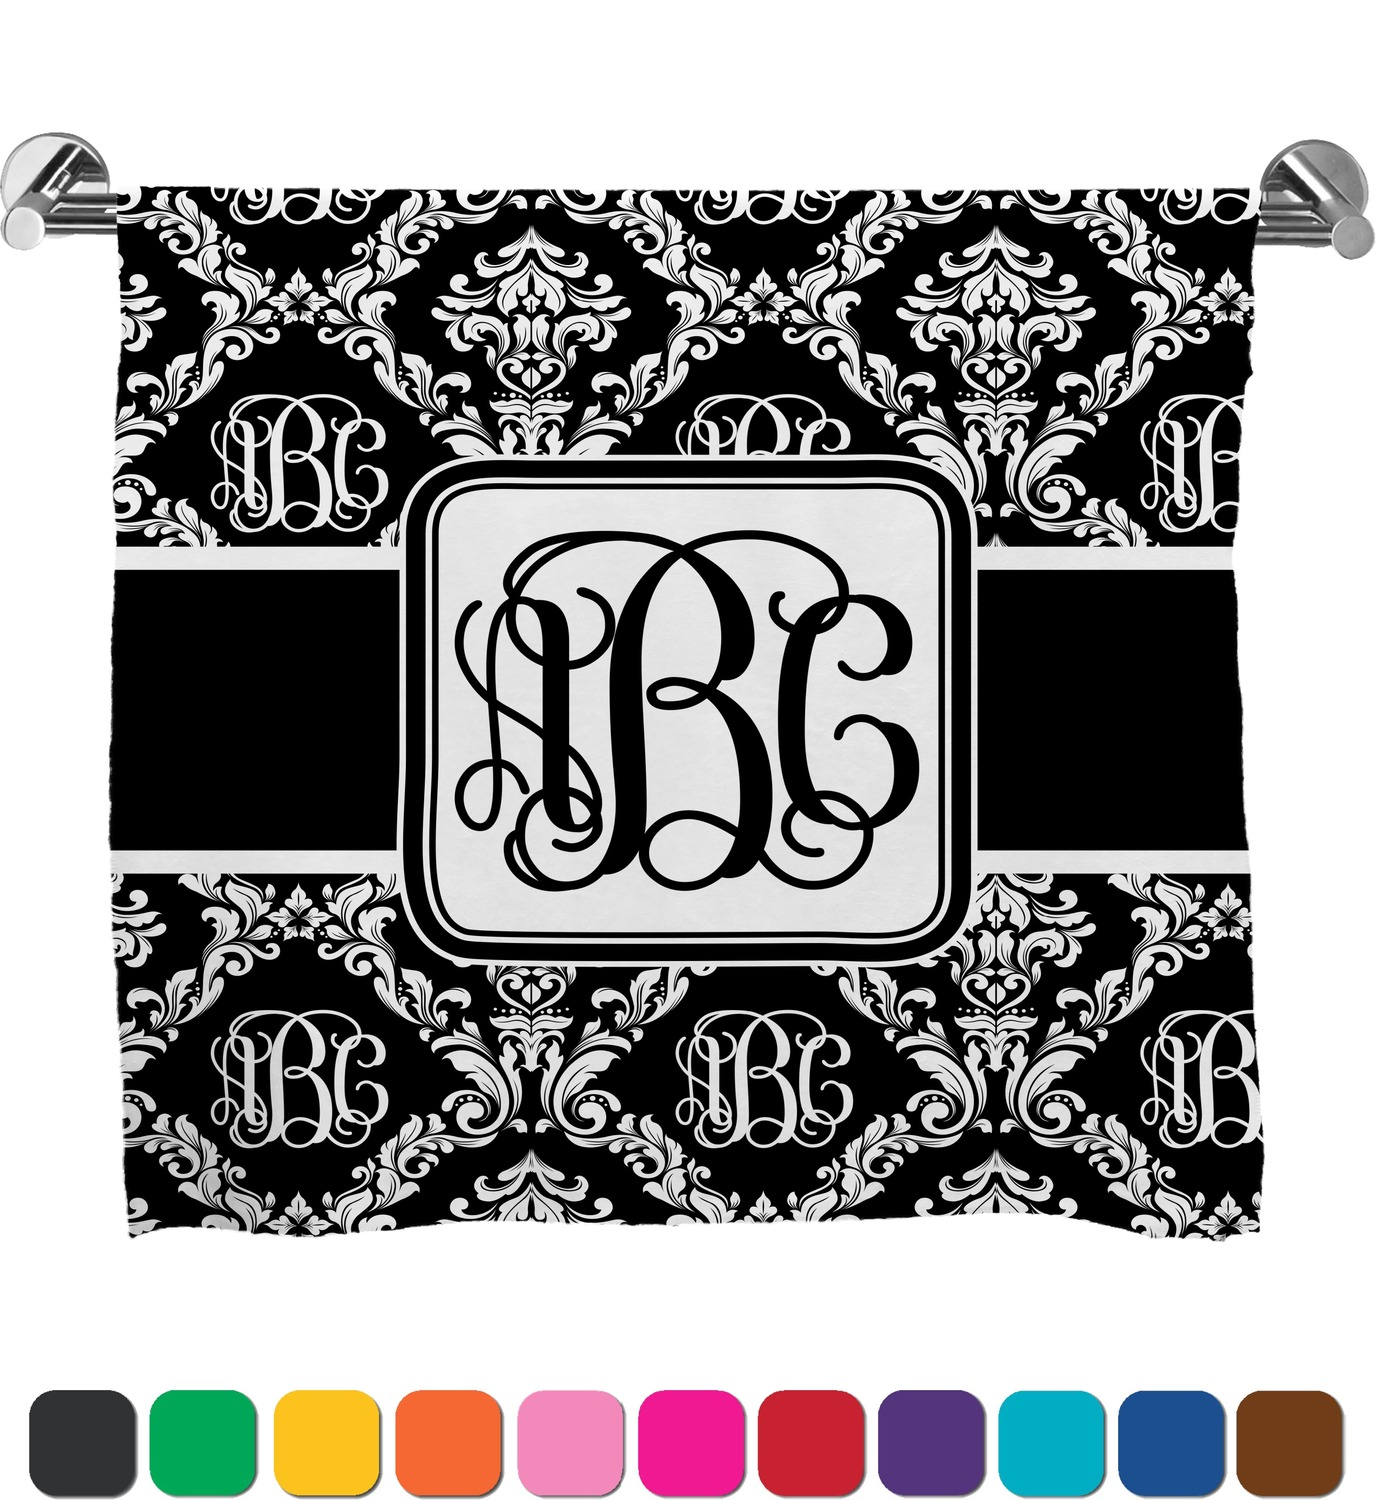 Captivating monogrammed bath towels with personalized towel of monogrammed towel set ideas